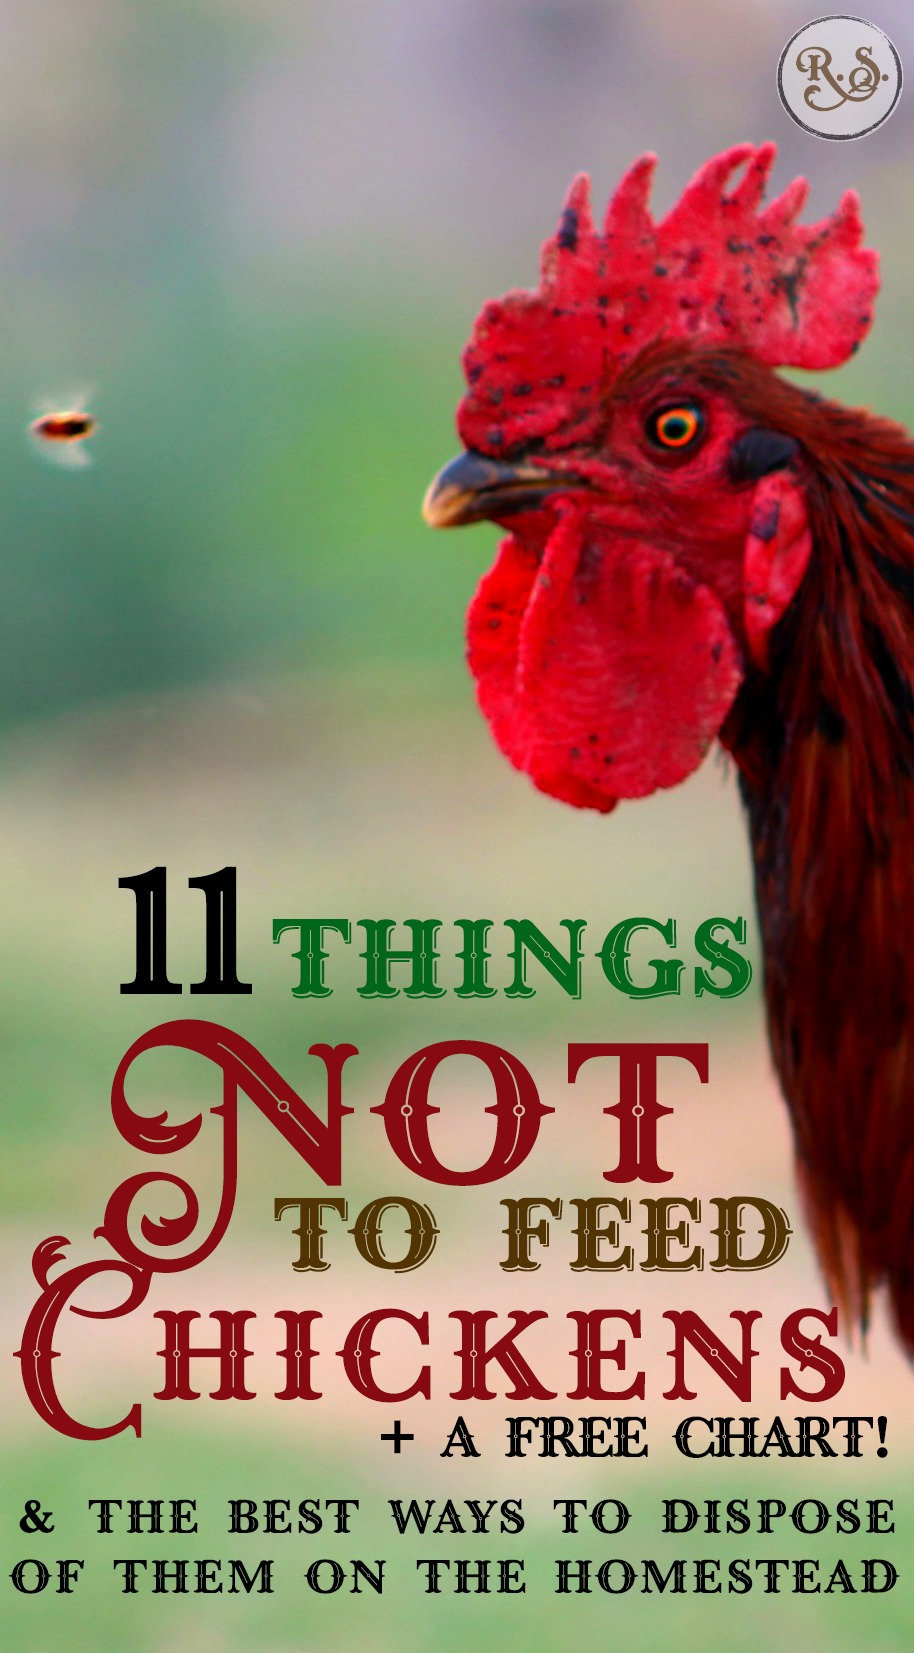 11 Things NOT to Feed Chickens & The Best Way to Dispose of Them